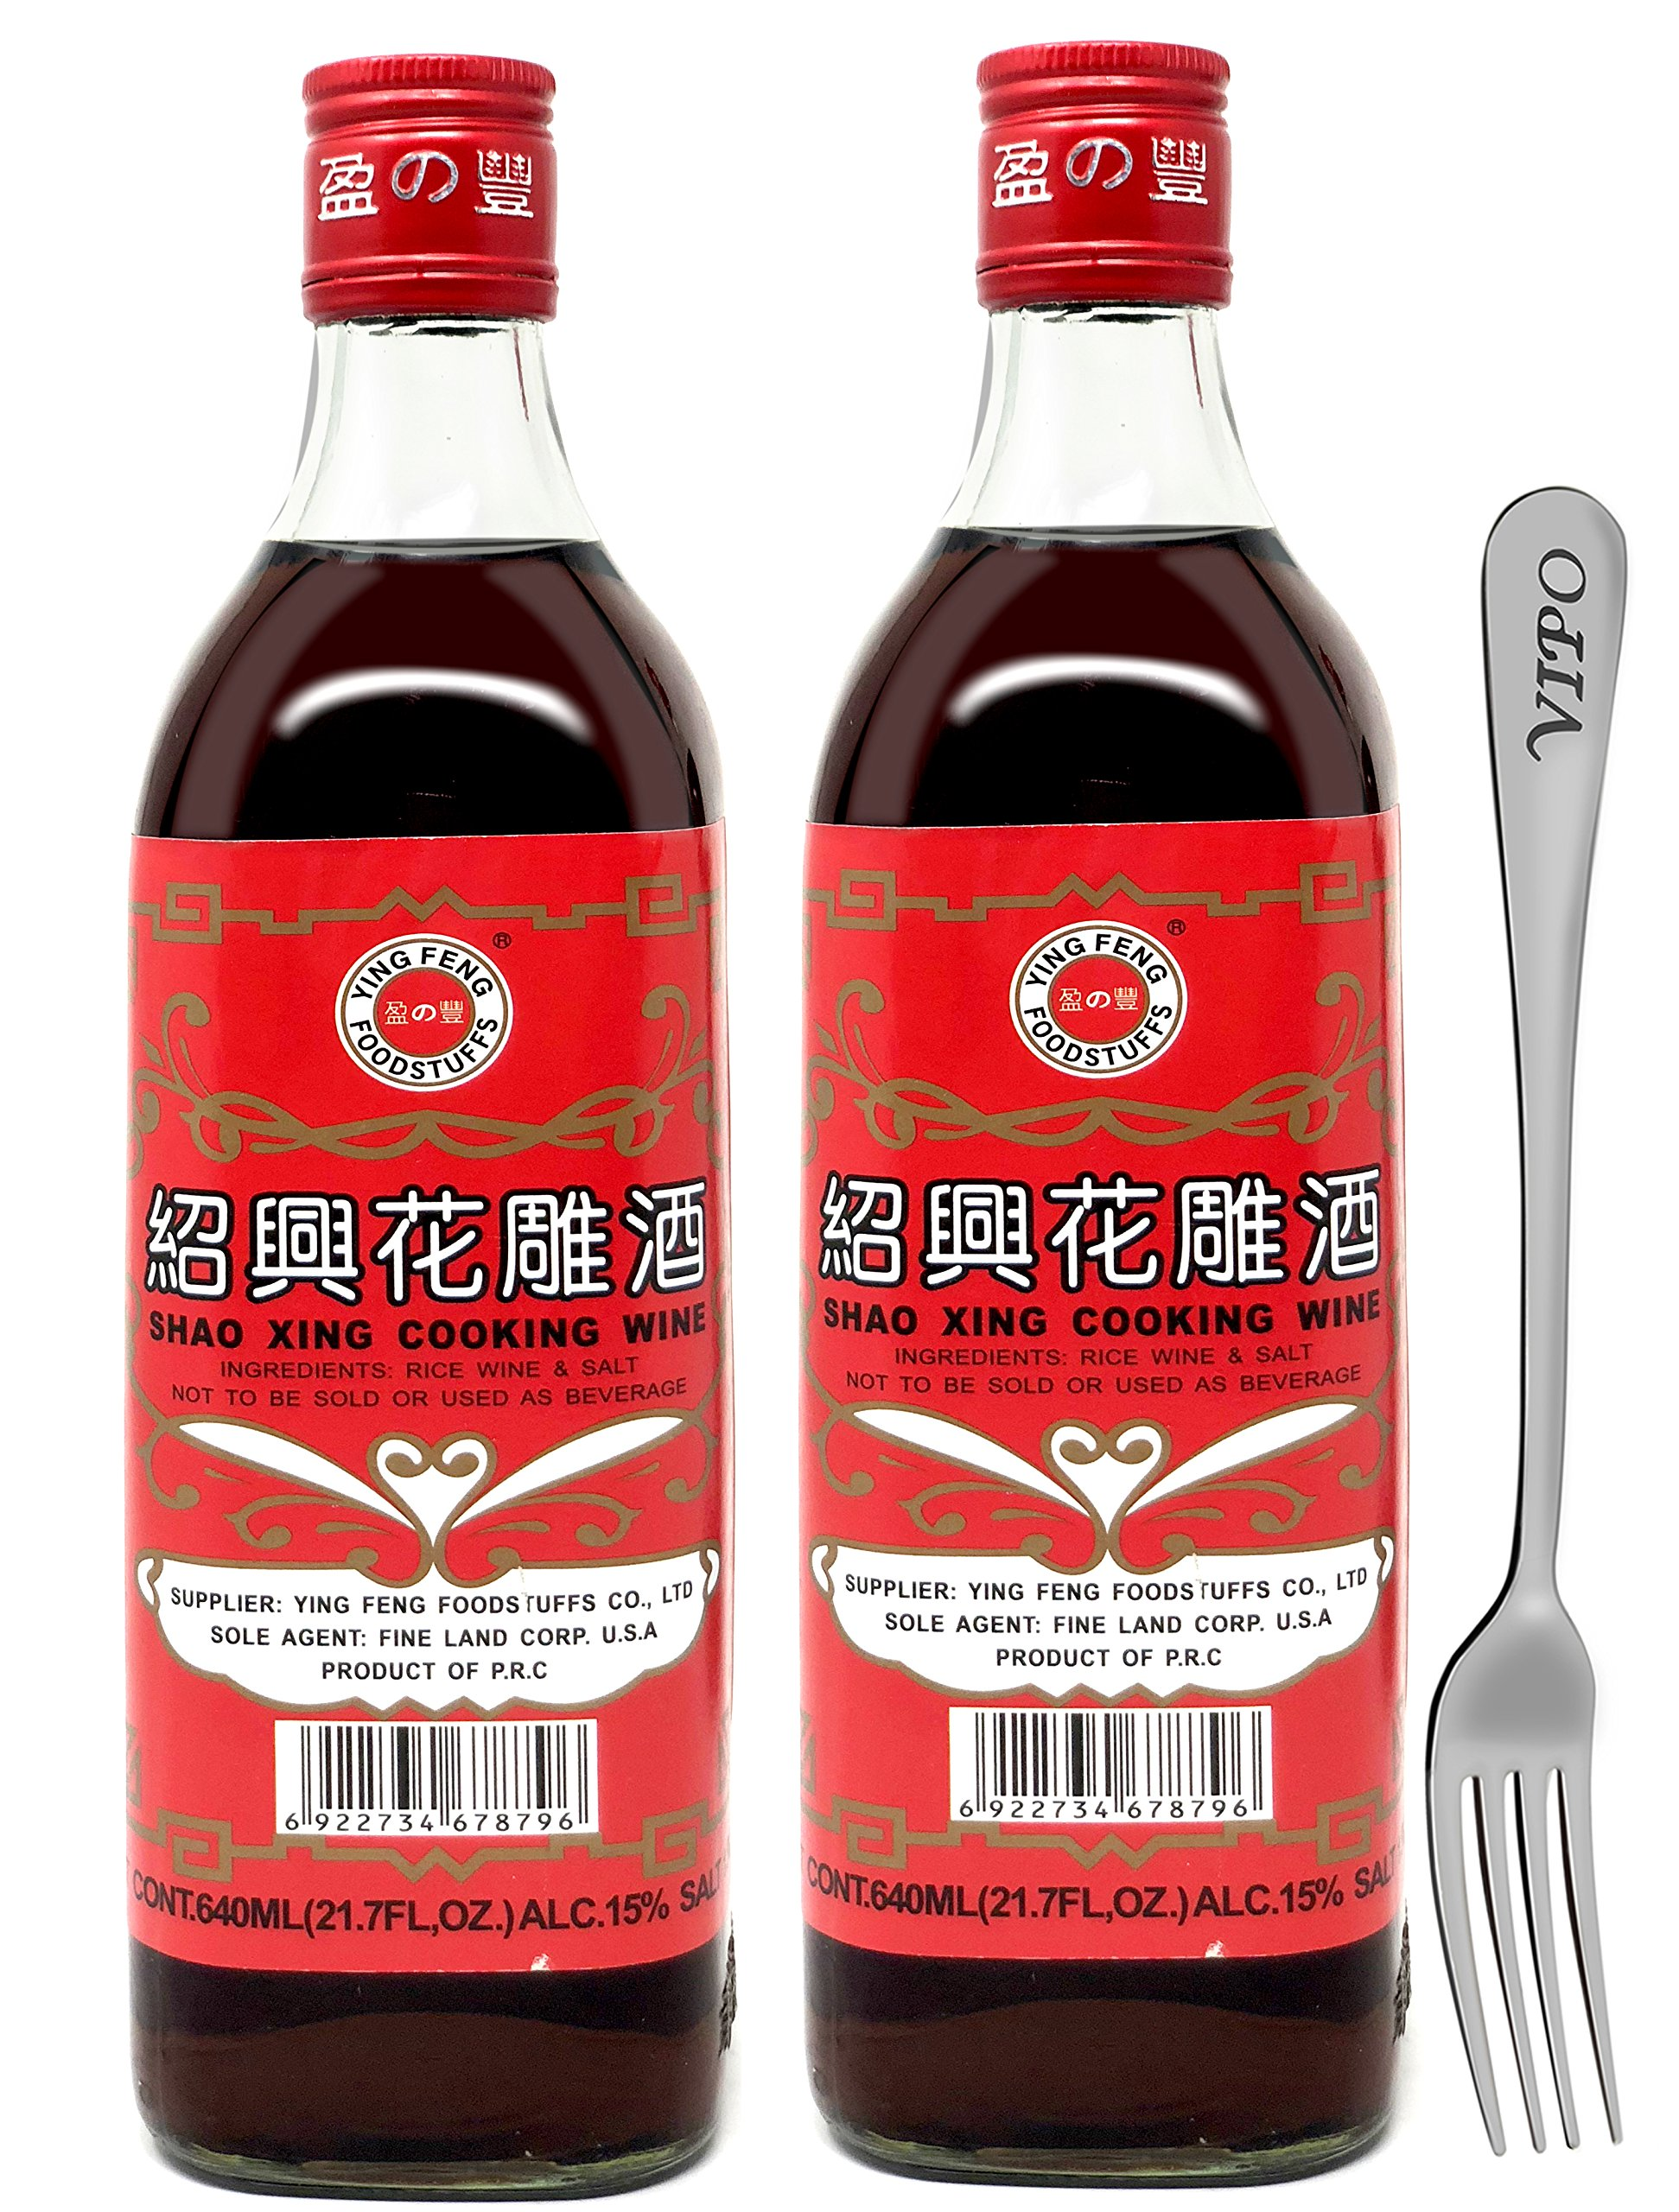 SHAOHSING RICE COOKING WINE 640ML(21.7 Fl, OZ) (Ying Feng Brand) Comes With Free Vipo Fork. (2 Bottles) by Ying Feng